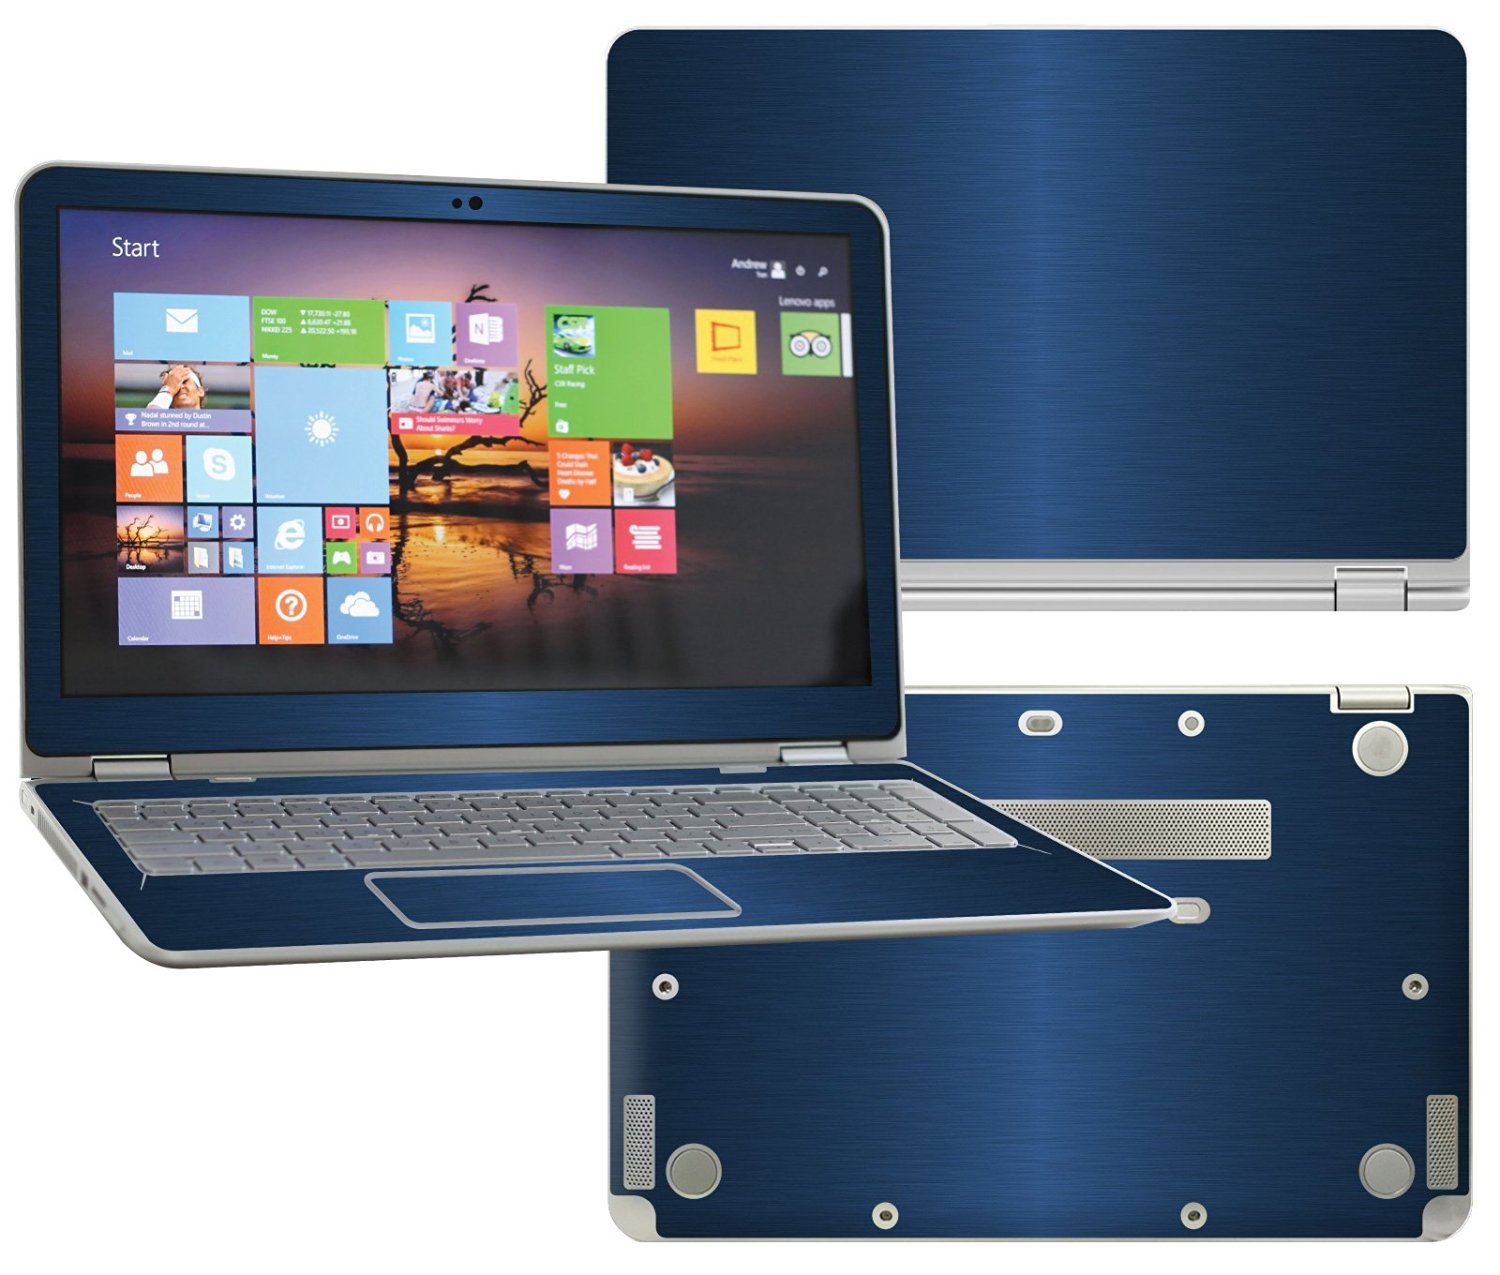 7070feefe9e3 Buy Decalrus - Protective decal for HP Envy X360 M6-w102dx 2-in-1 ...